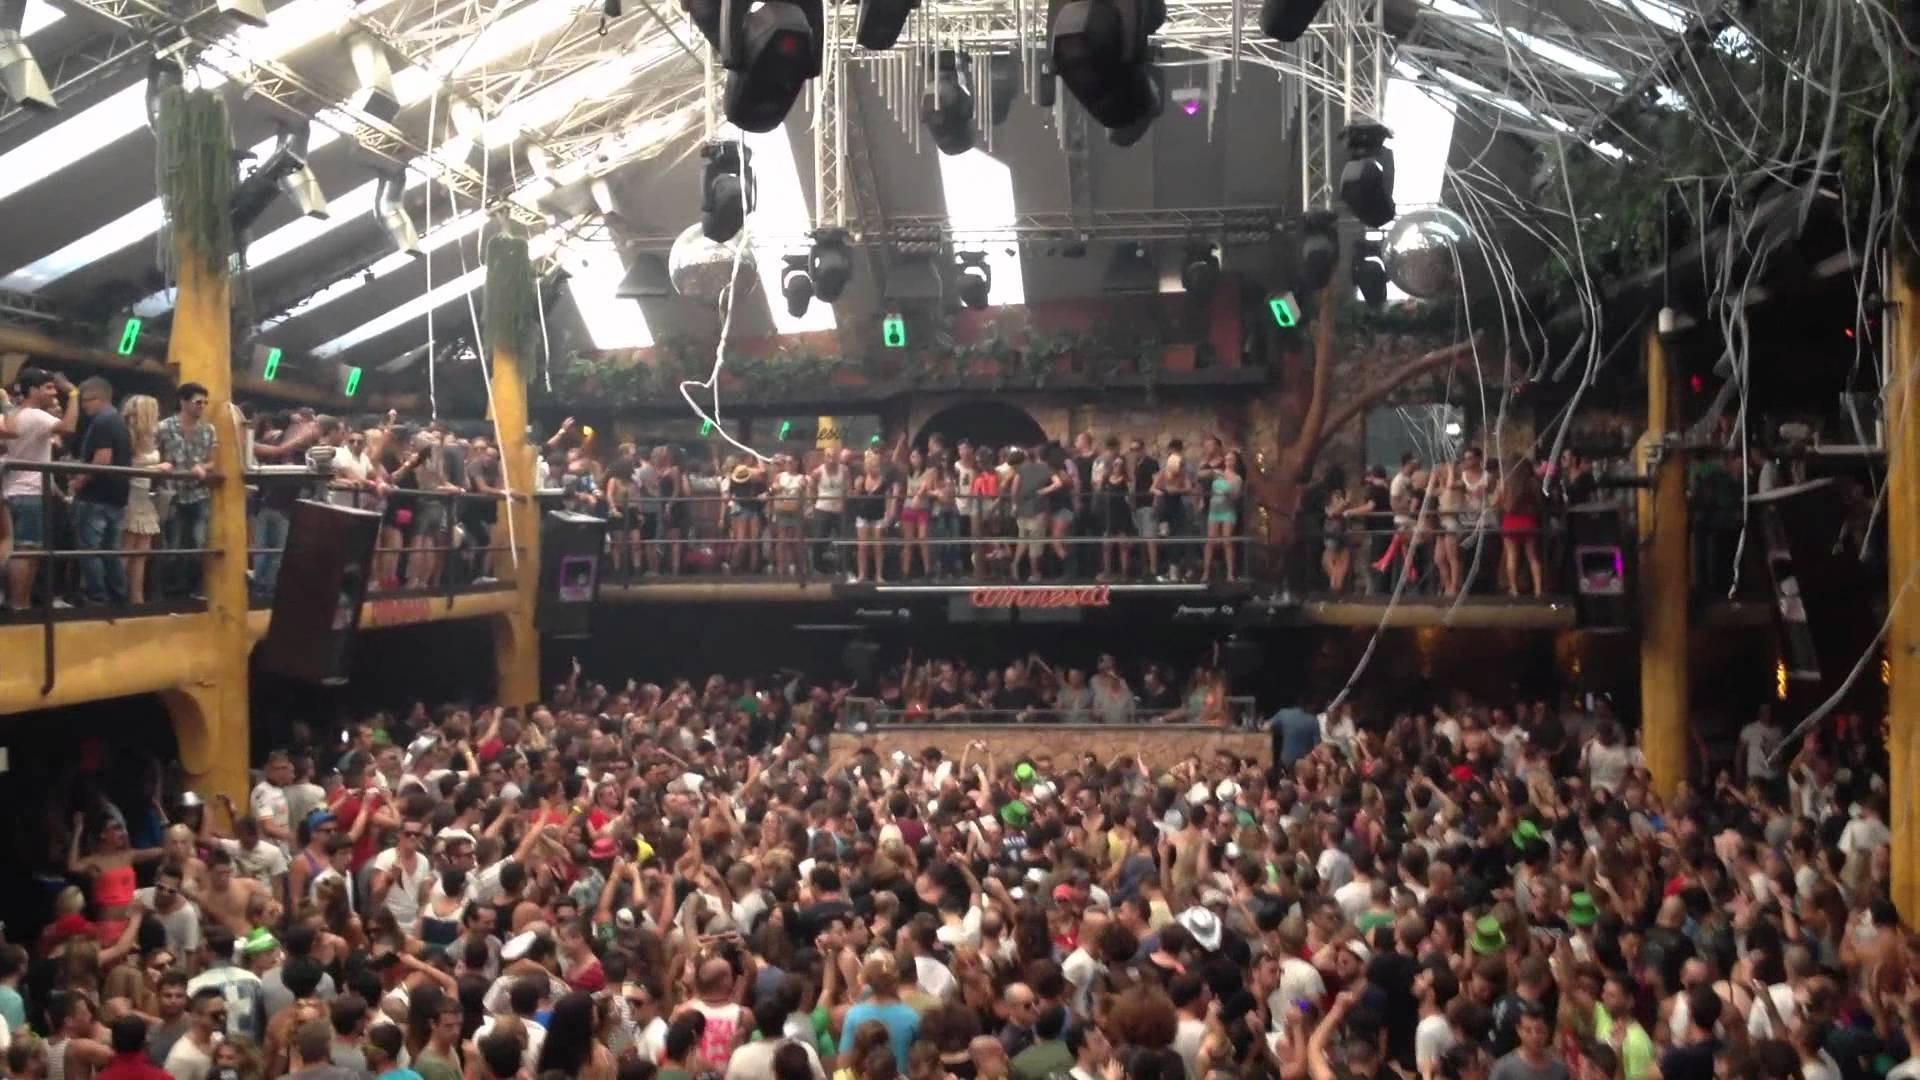 This Video of Confused Clubbers is an Ode to the Beautiful Disappointment of Life